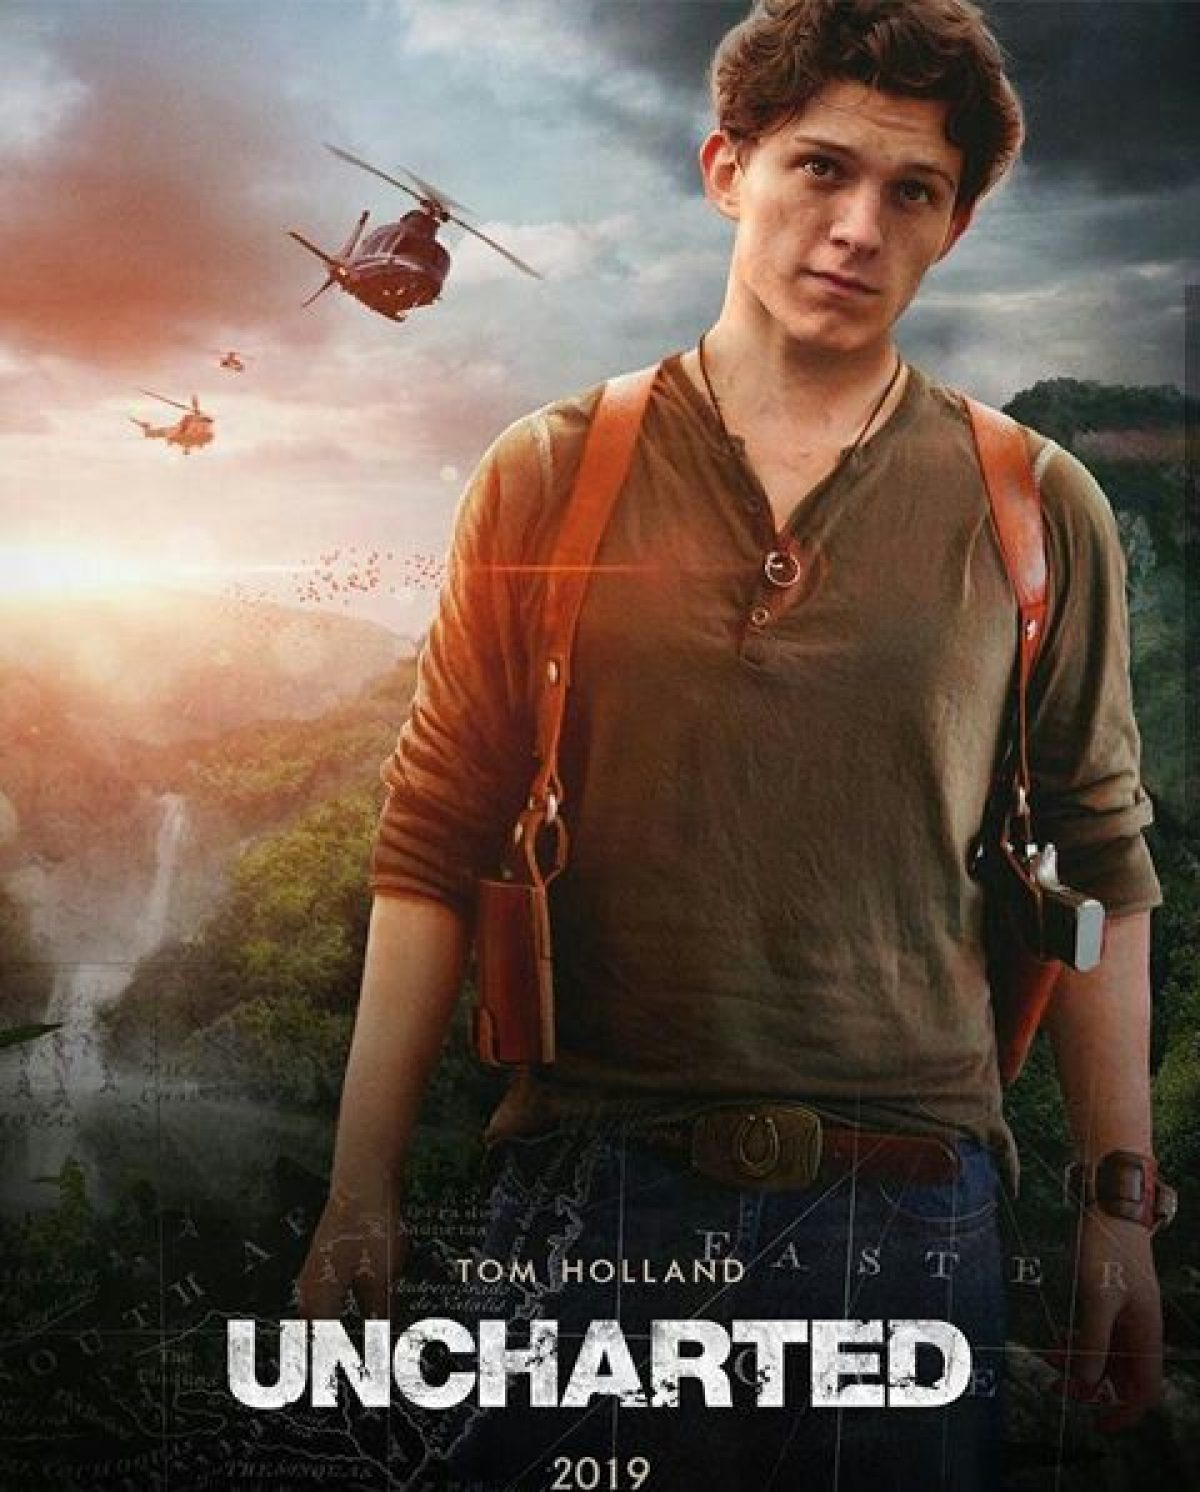 Tom Holland Shares Uncharted Set Photo Hinting The Preparation For